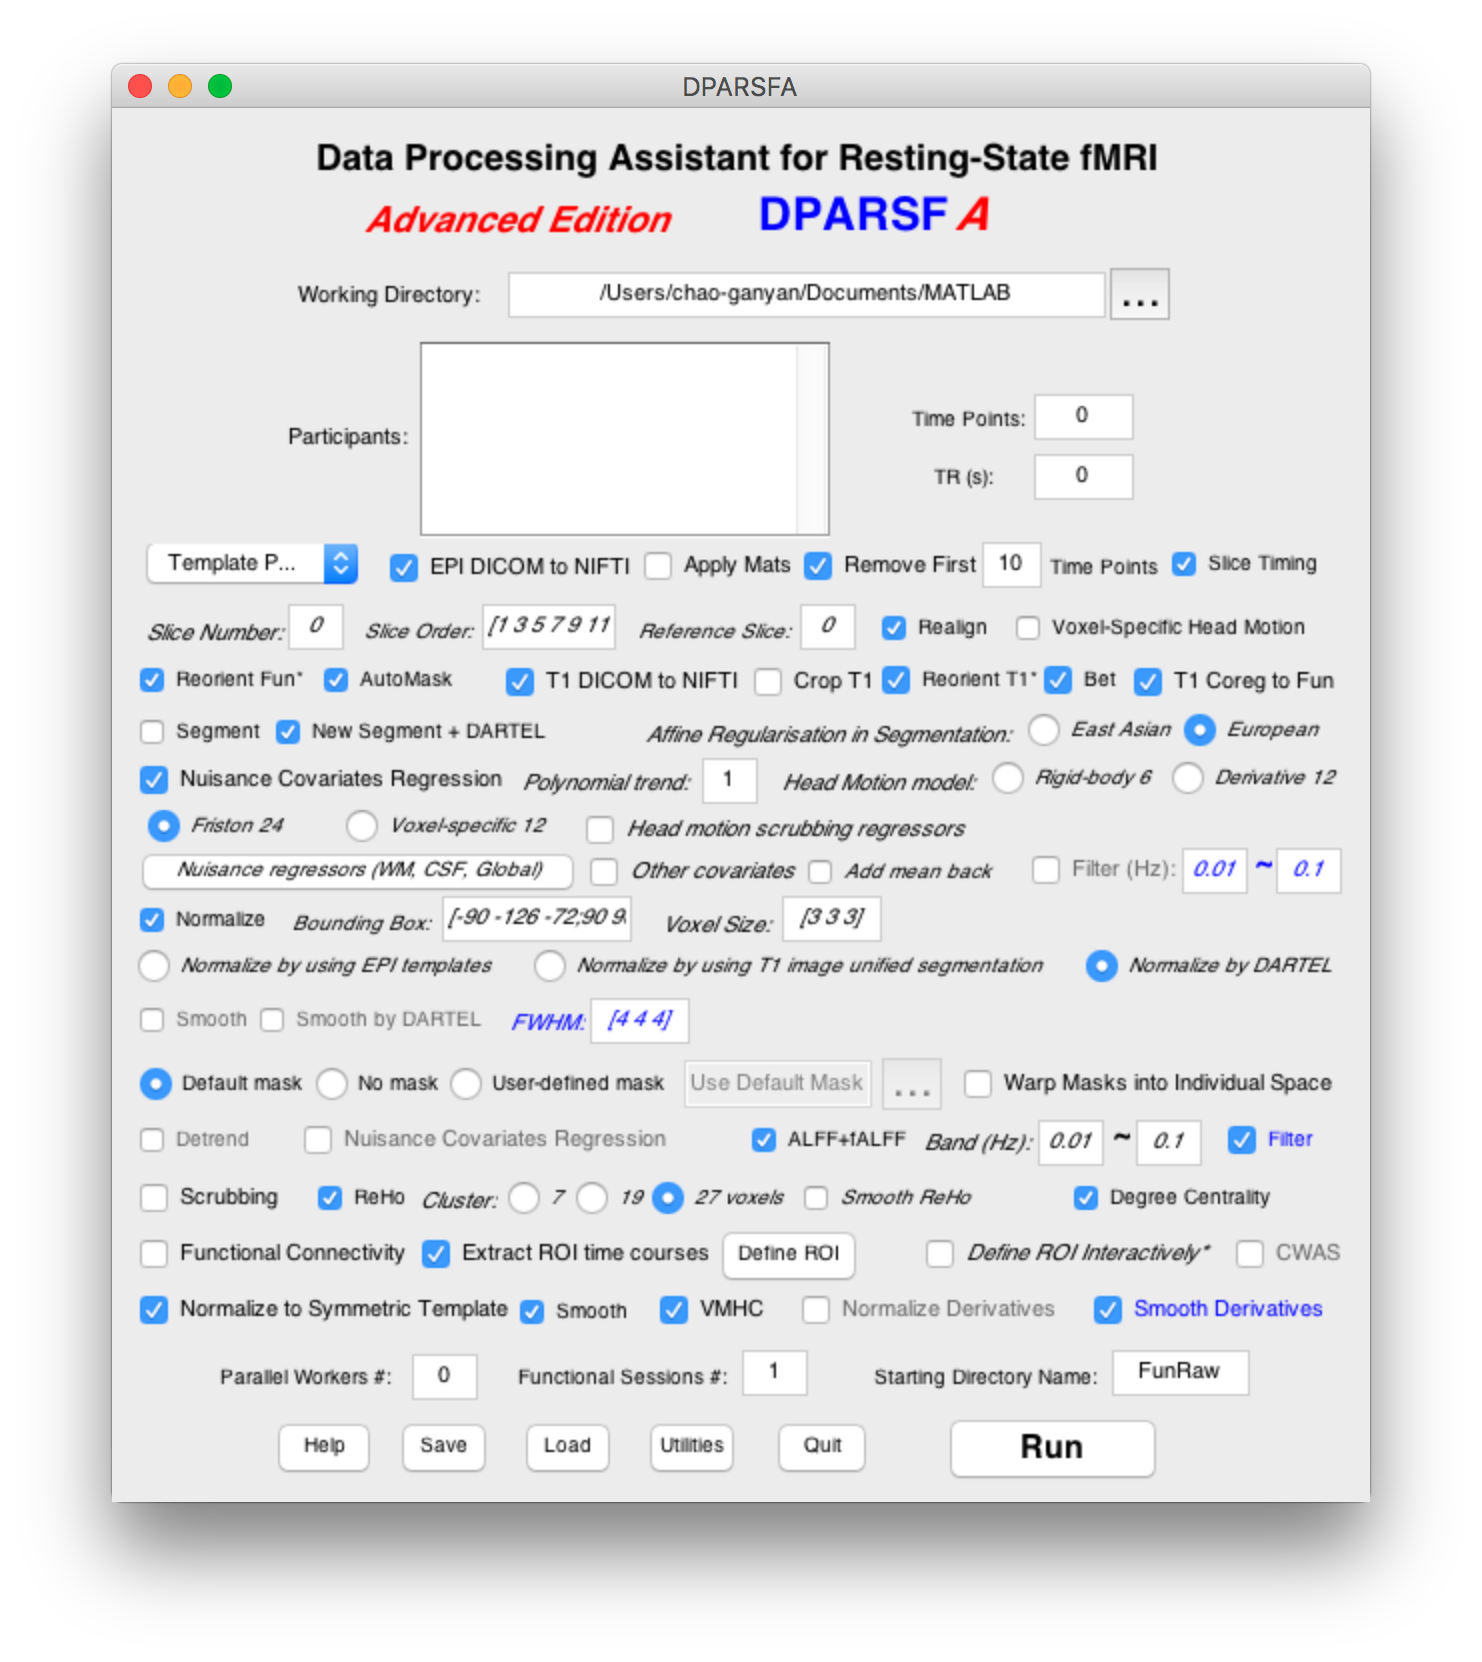 Data Processing Assistant for Resting-State fMRI (DPARSF